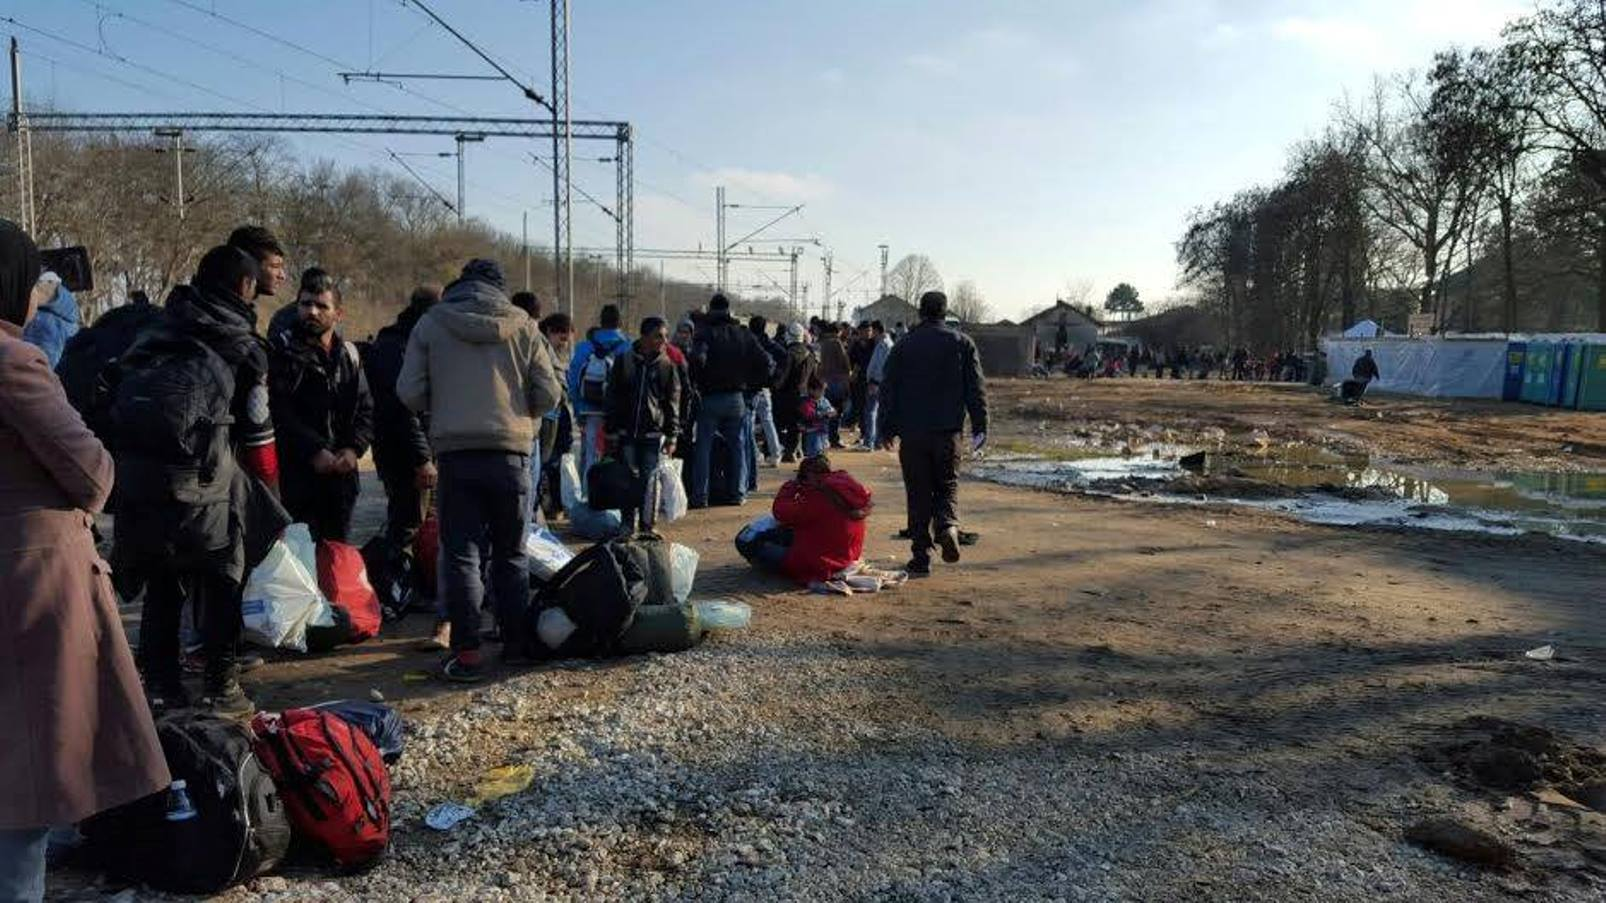 Refugees lining up for treatment at the Natan clinic in Serbia. Photo via Facebook